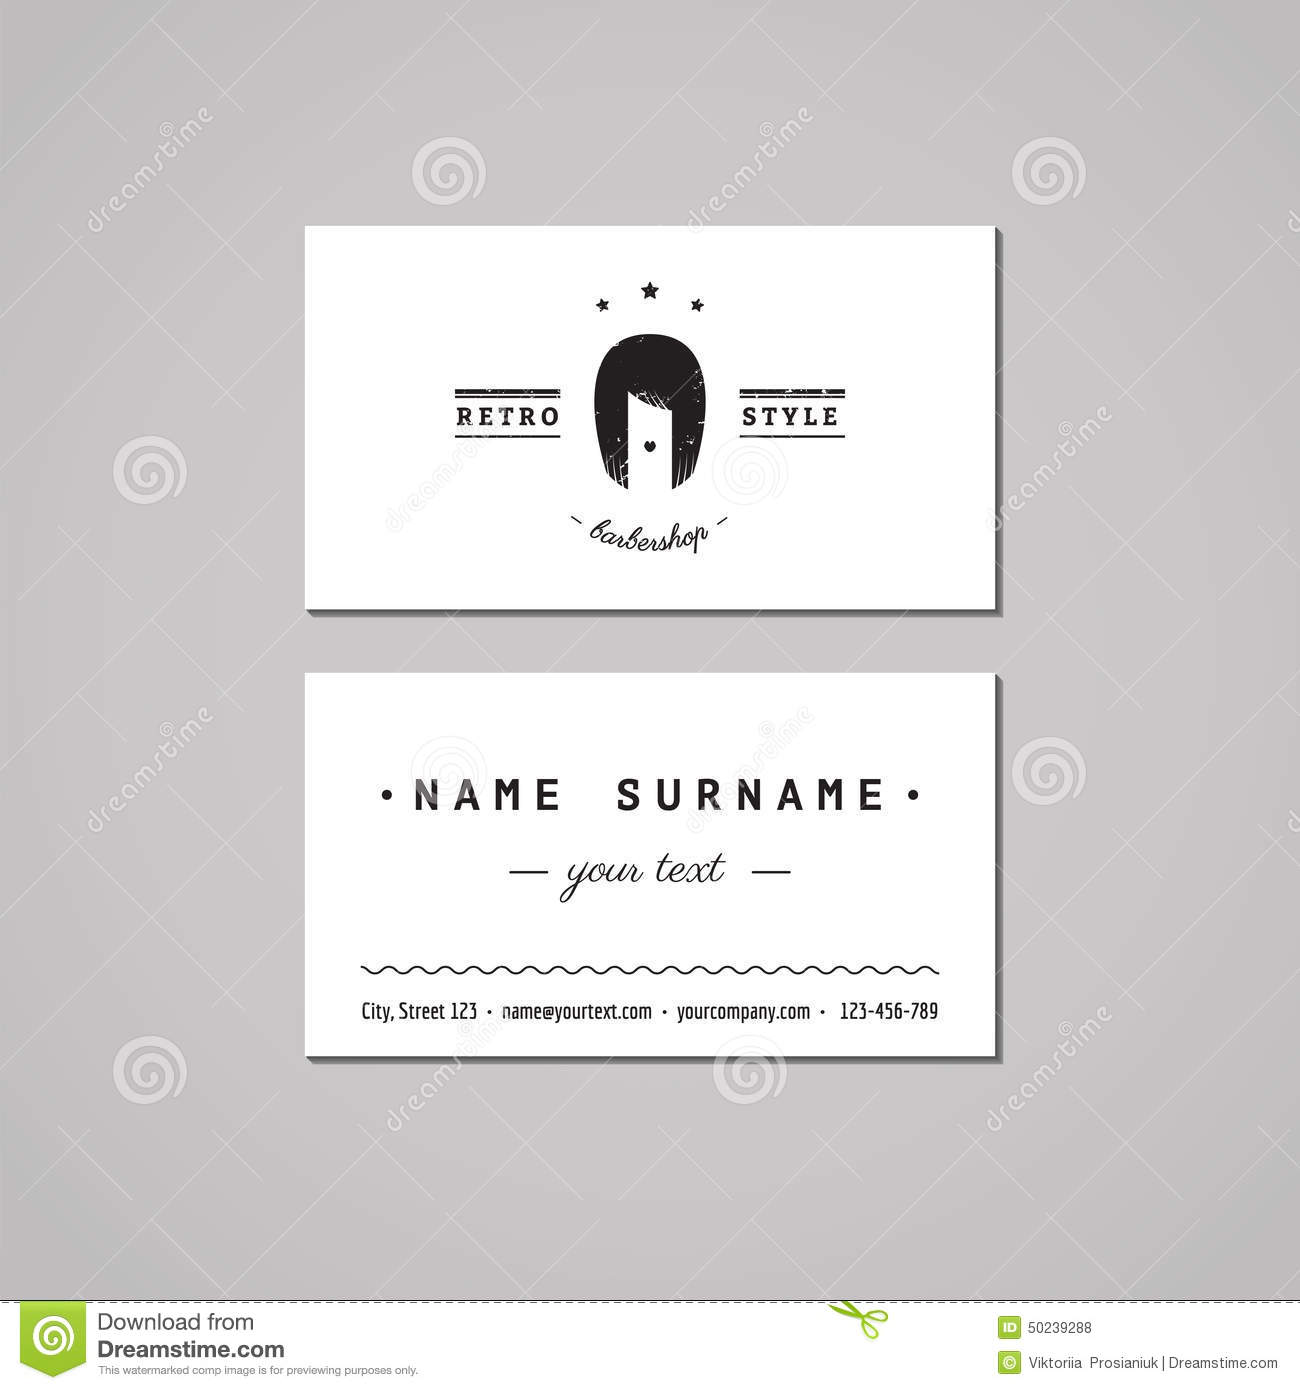 Beauty salon business plan free download for A beauty salon business plan